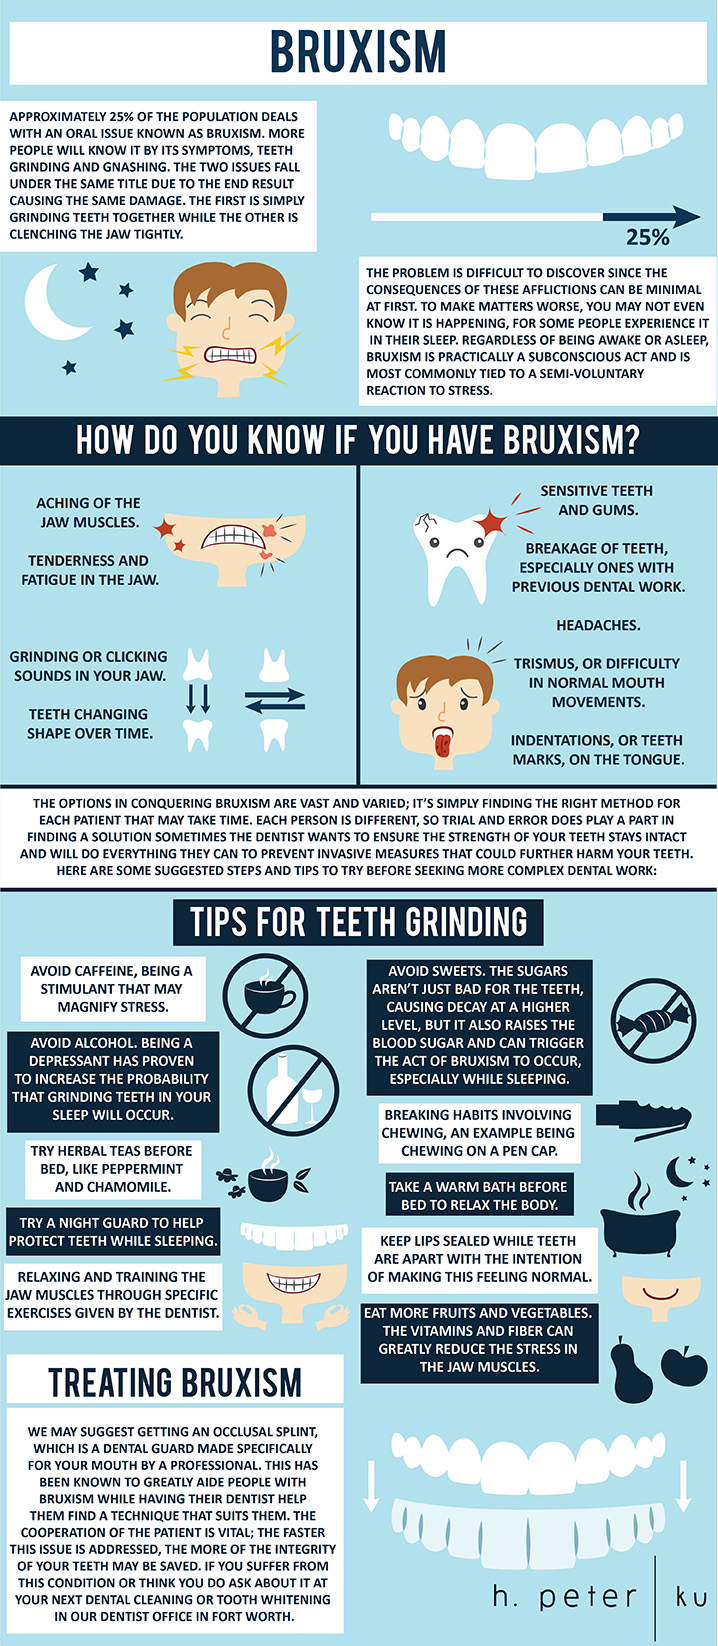 Bruxism Info-graphic